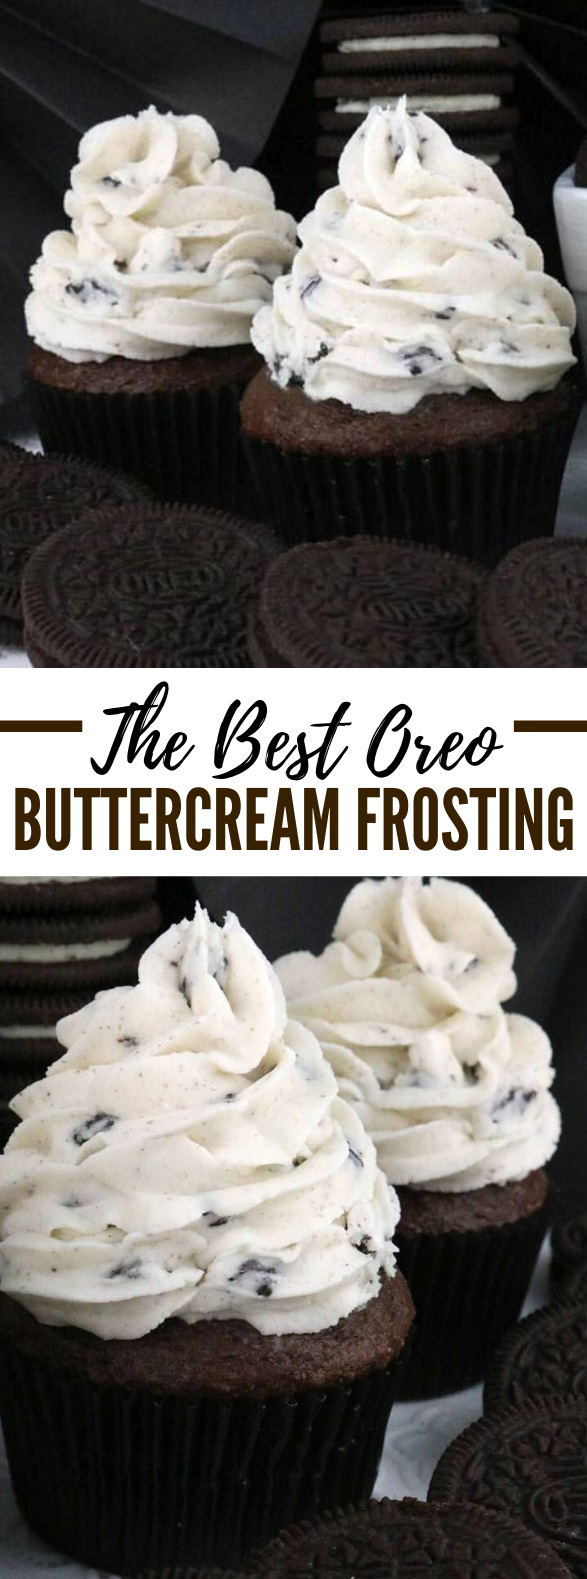 The Best Oreo Buttercream Frosting #desserts #cookies